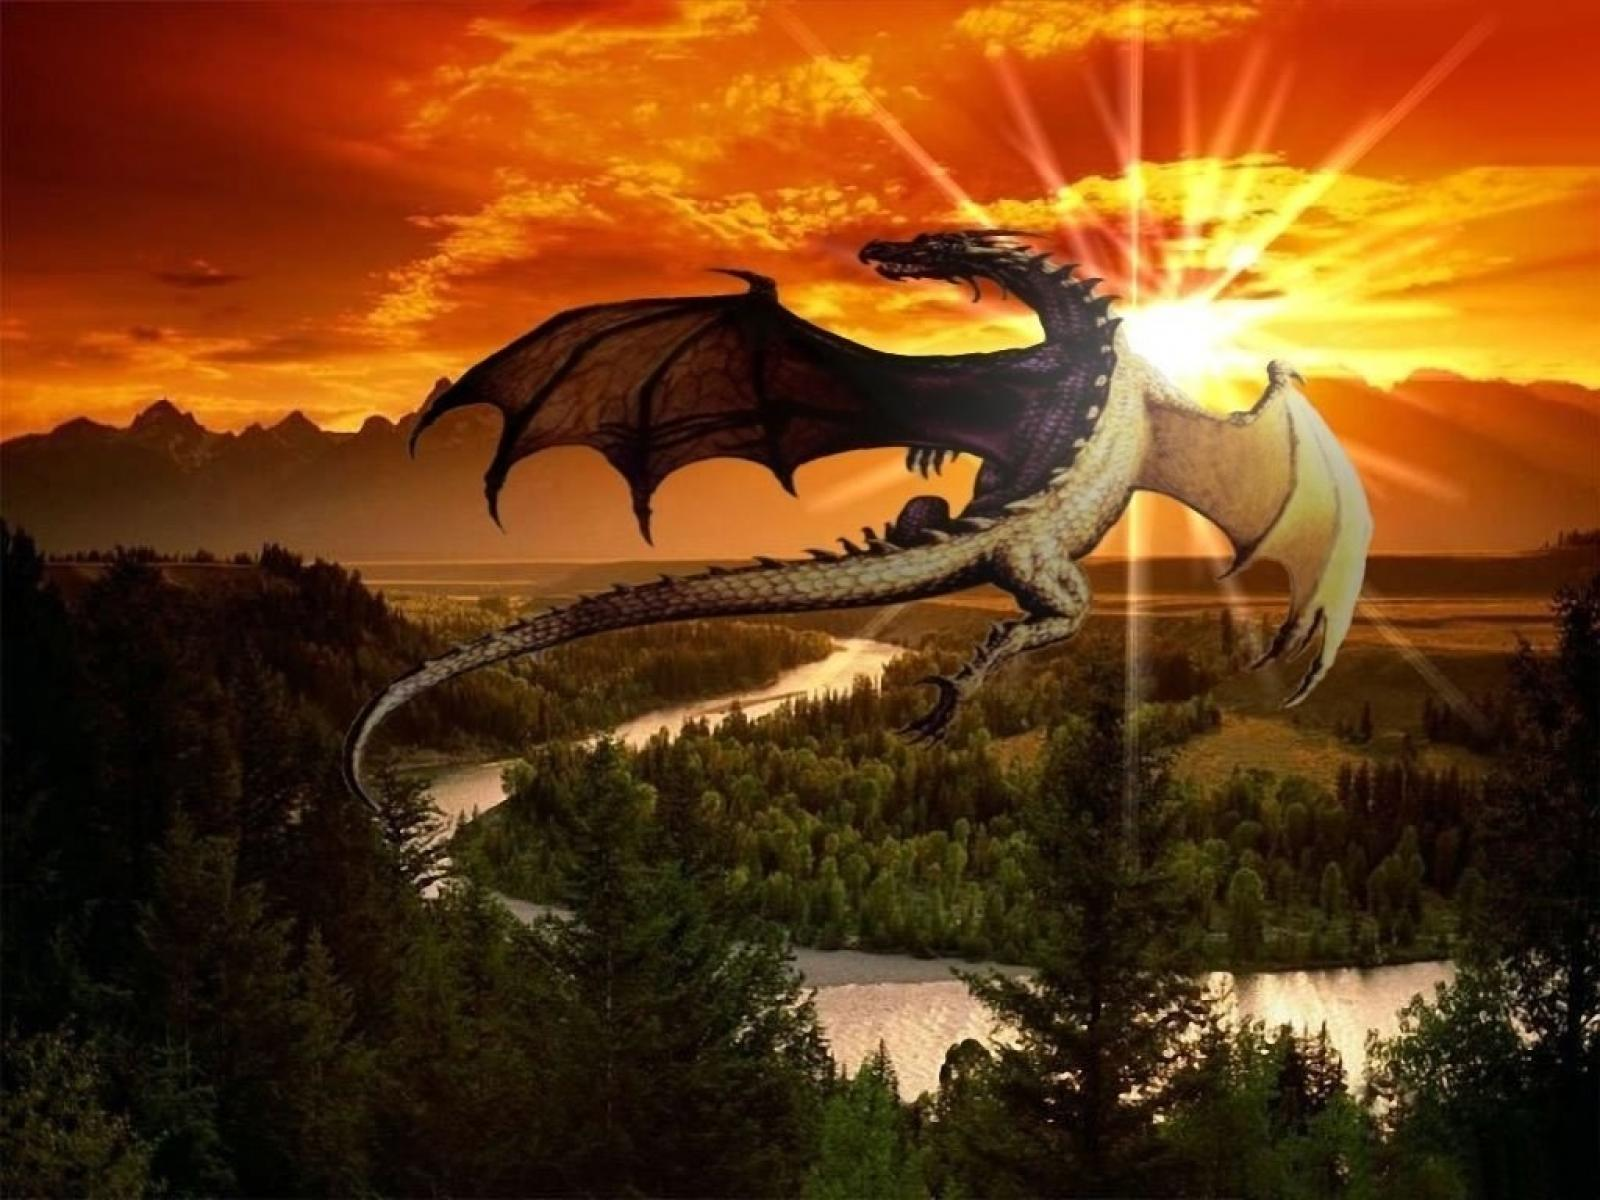 Cool Wallpaper Mountain Dragon - free-dragon-wallpaper-downloads-13  HD_727755.jpg